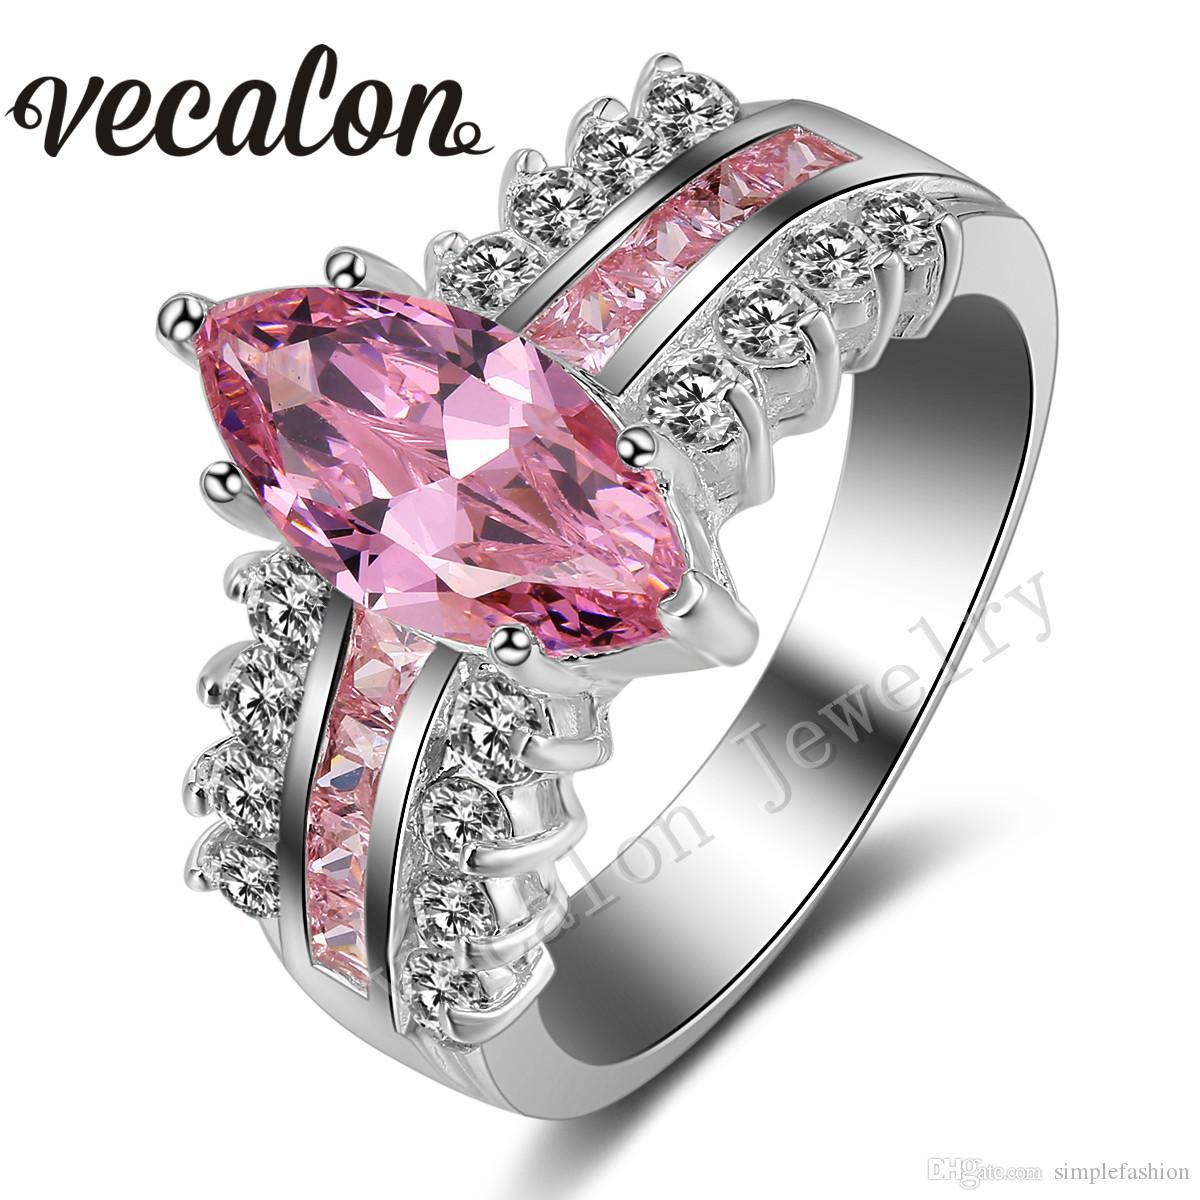 2018 vecalon engagement wedding ring set for women marquise cut 5ct pink simulated diamond cz 925 sterling silver female band ring from simplefashion - Pink Wedding Ring Set